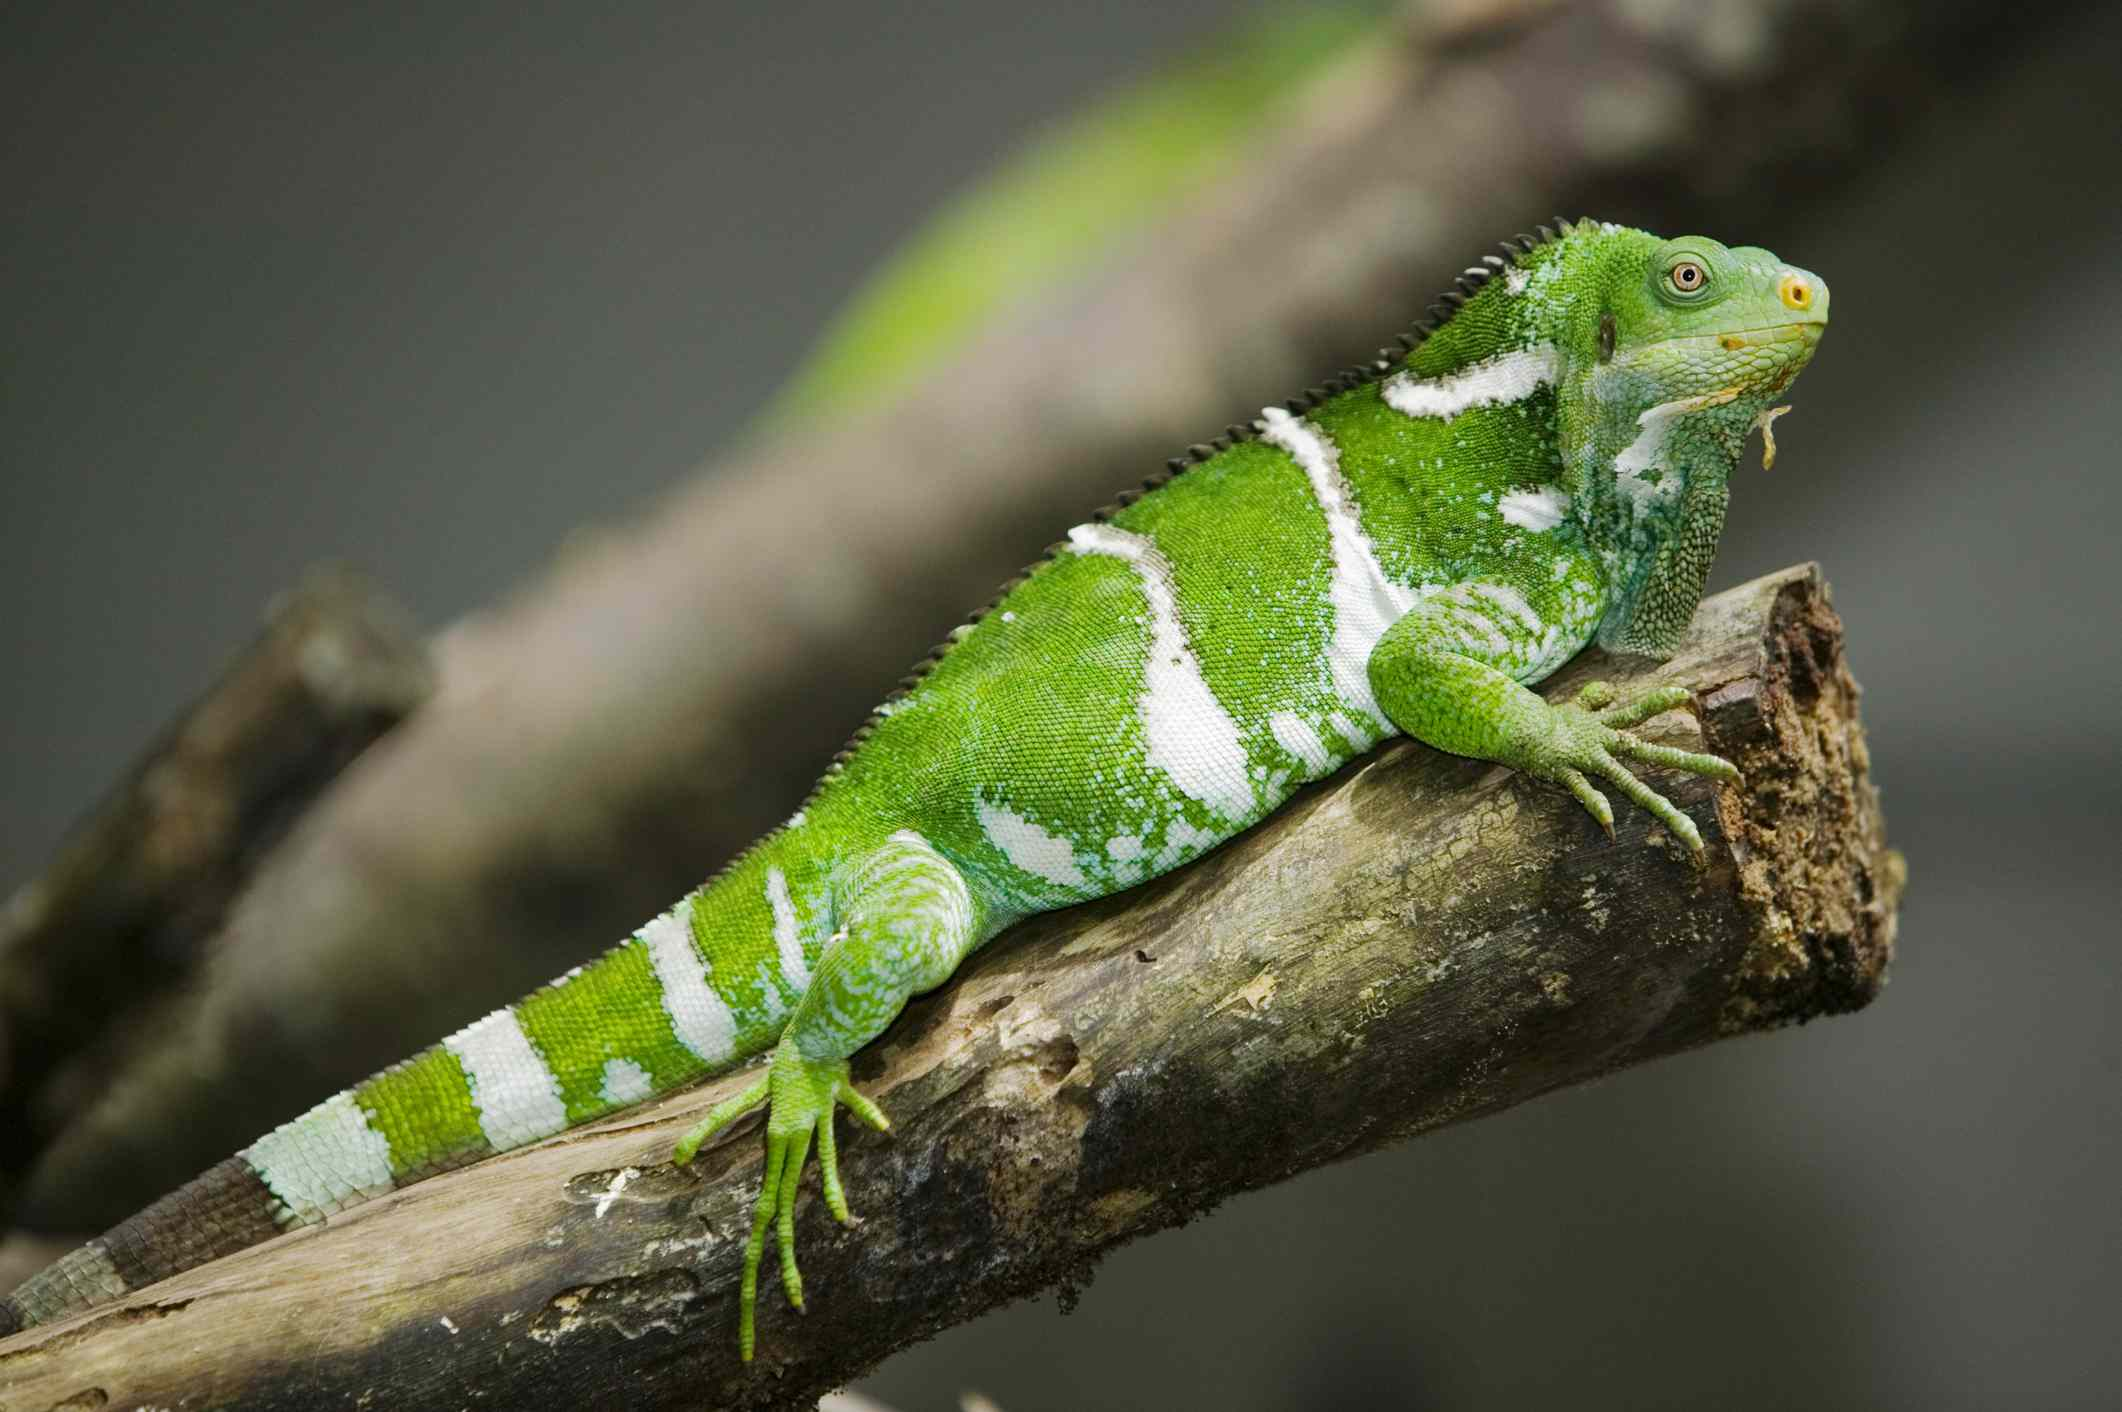 Green and white striped Fiji banded iguana on a tree branch